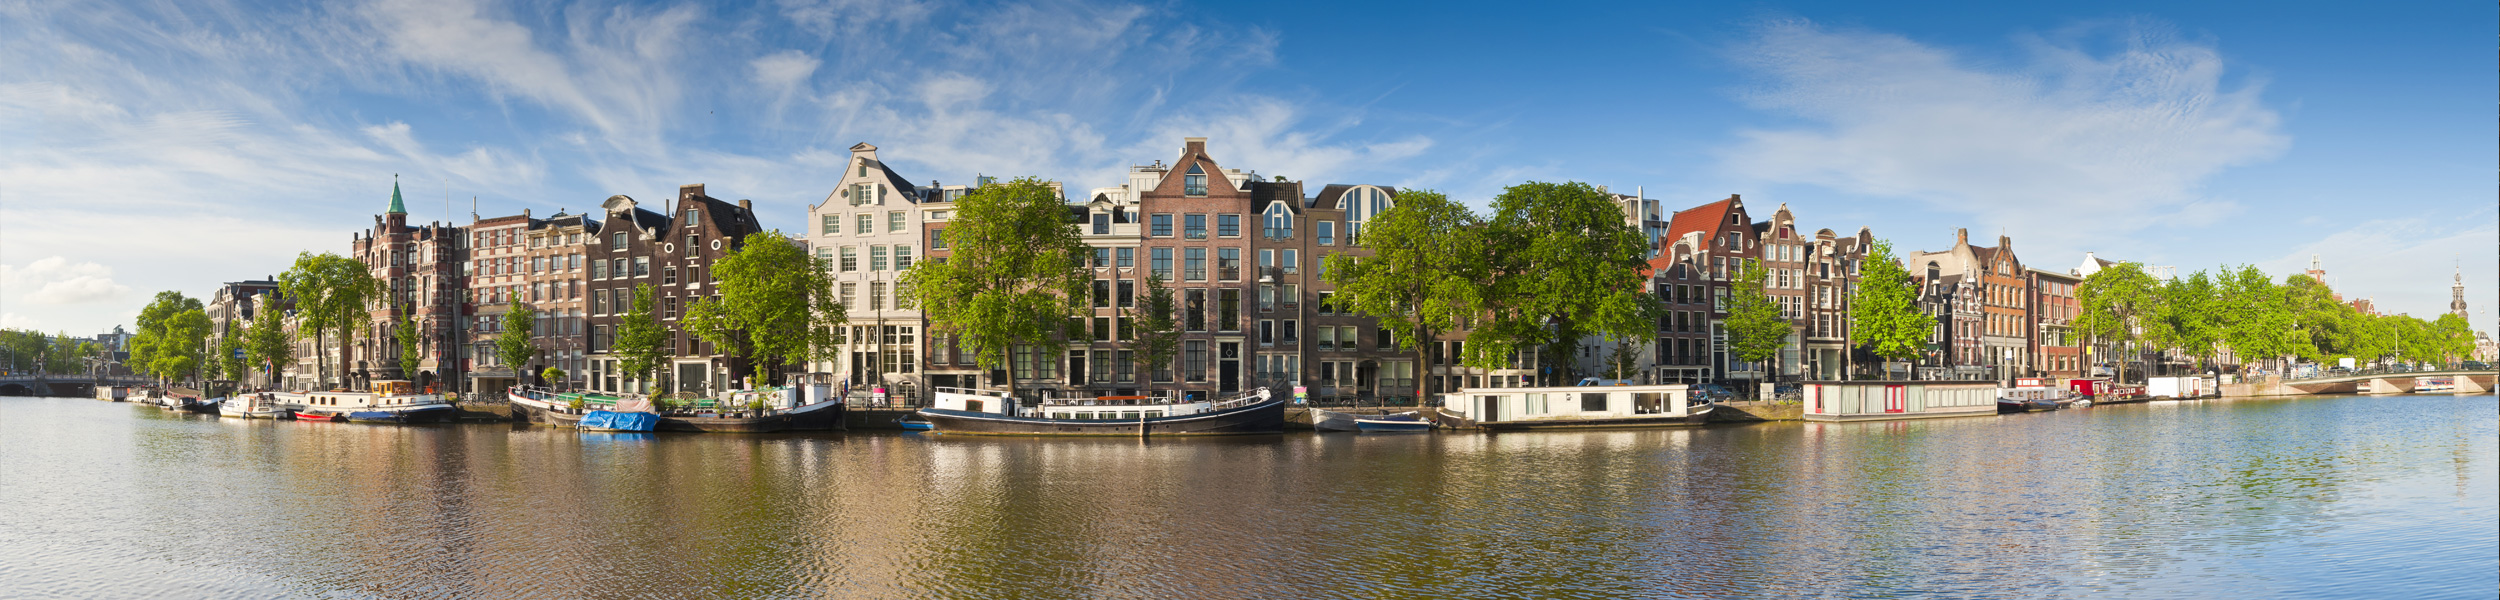 QA Automation Engineer Amsterdam, the Netherlands